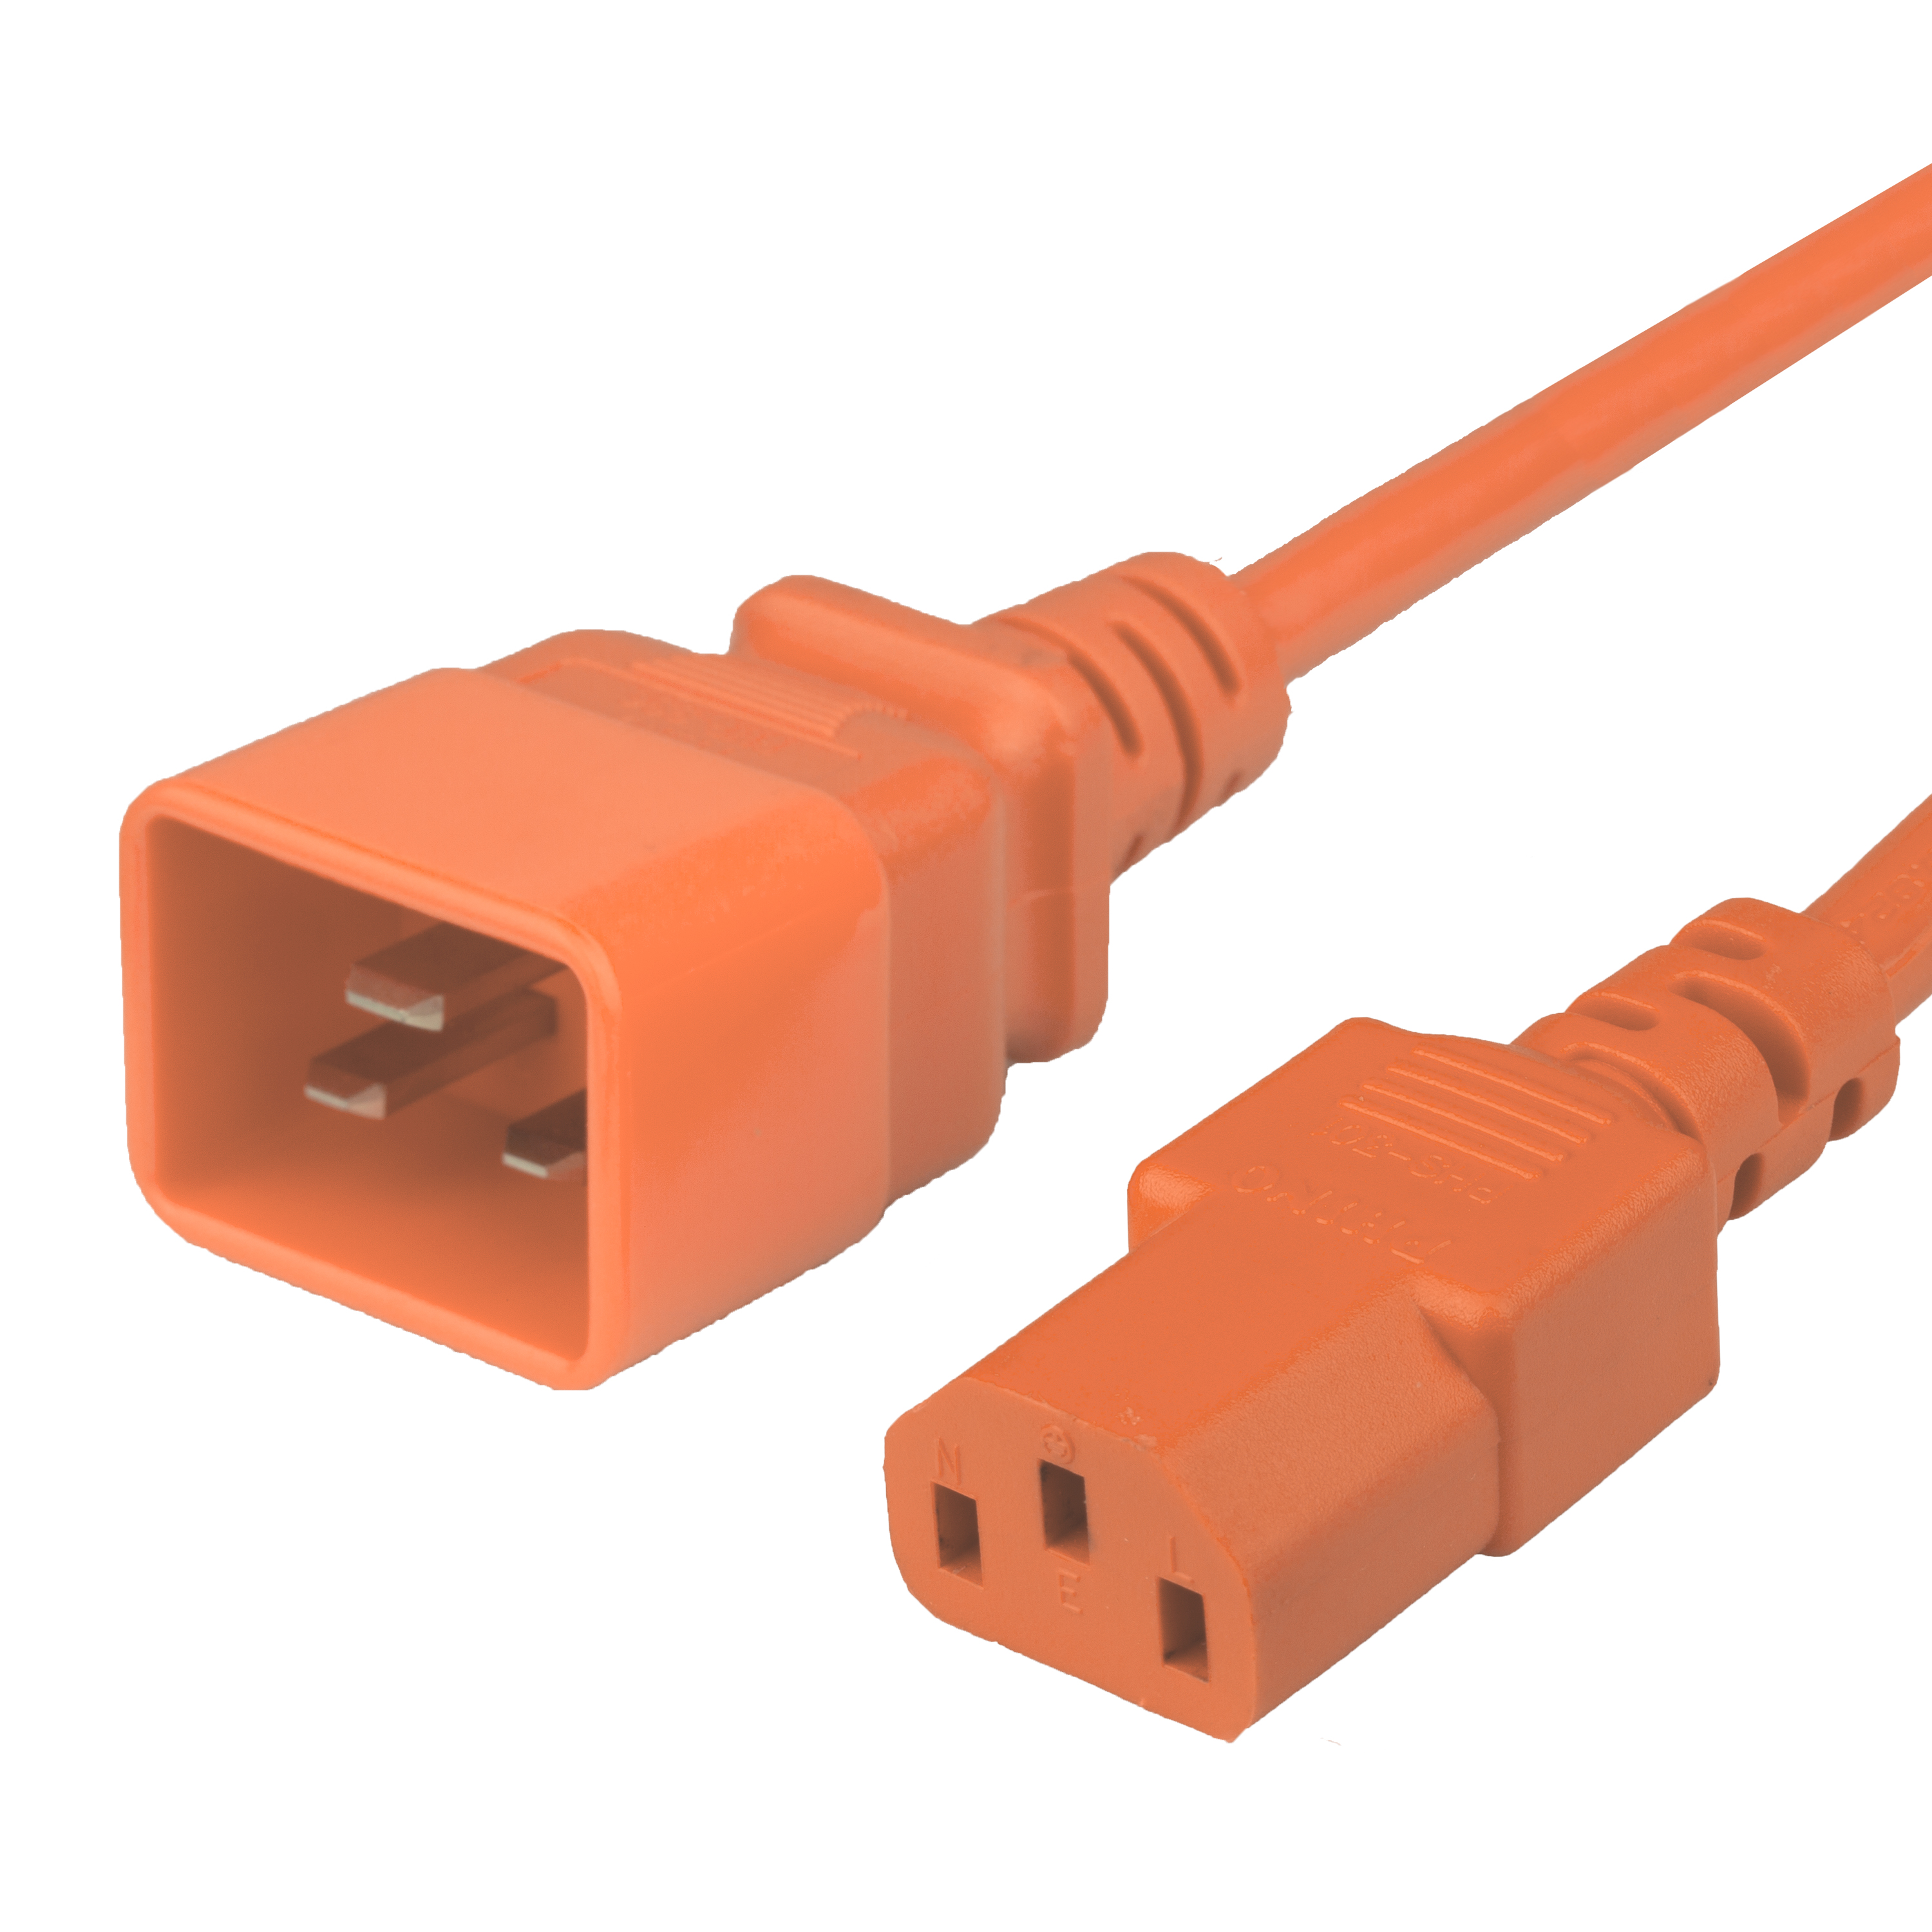 4FT C20 C13 15A 250V ORANGE Power Cord